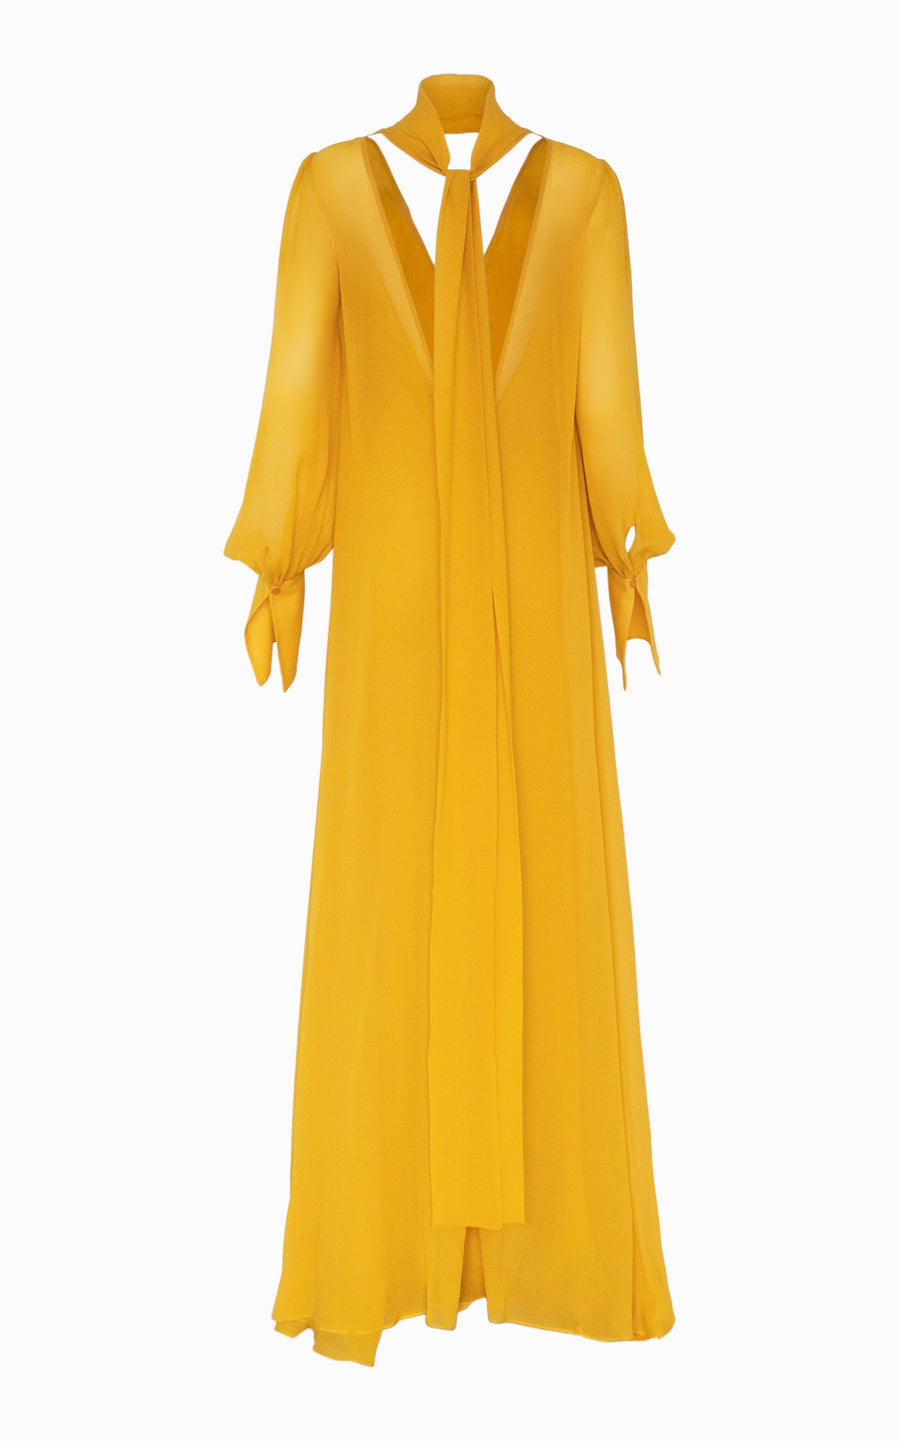 Preorder Eclipse Billow Maxi Dress | Turmeric